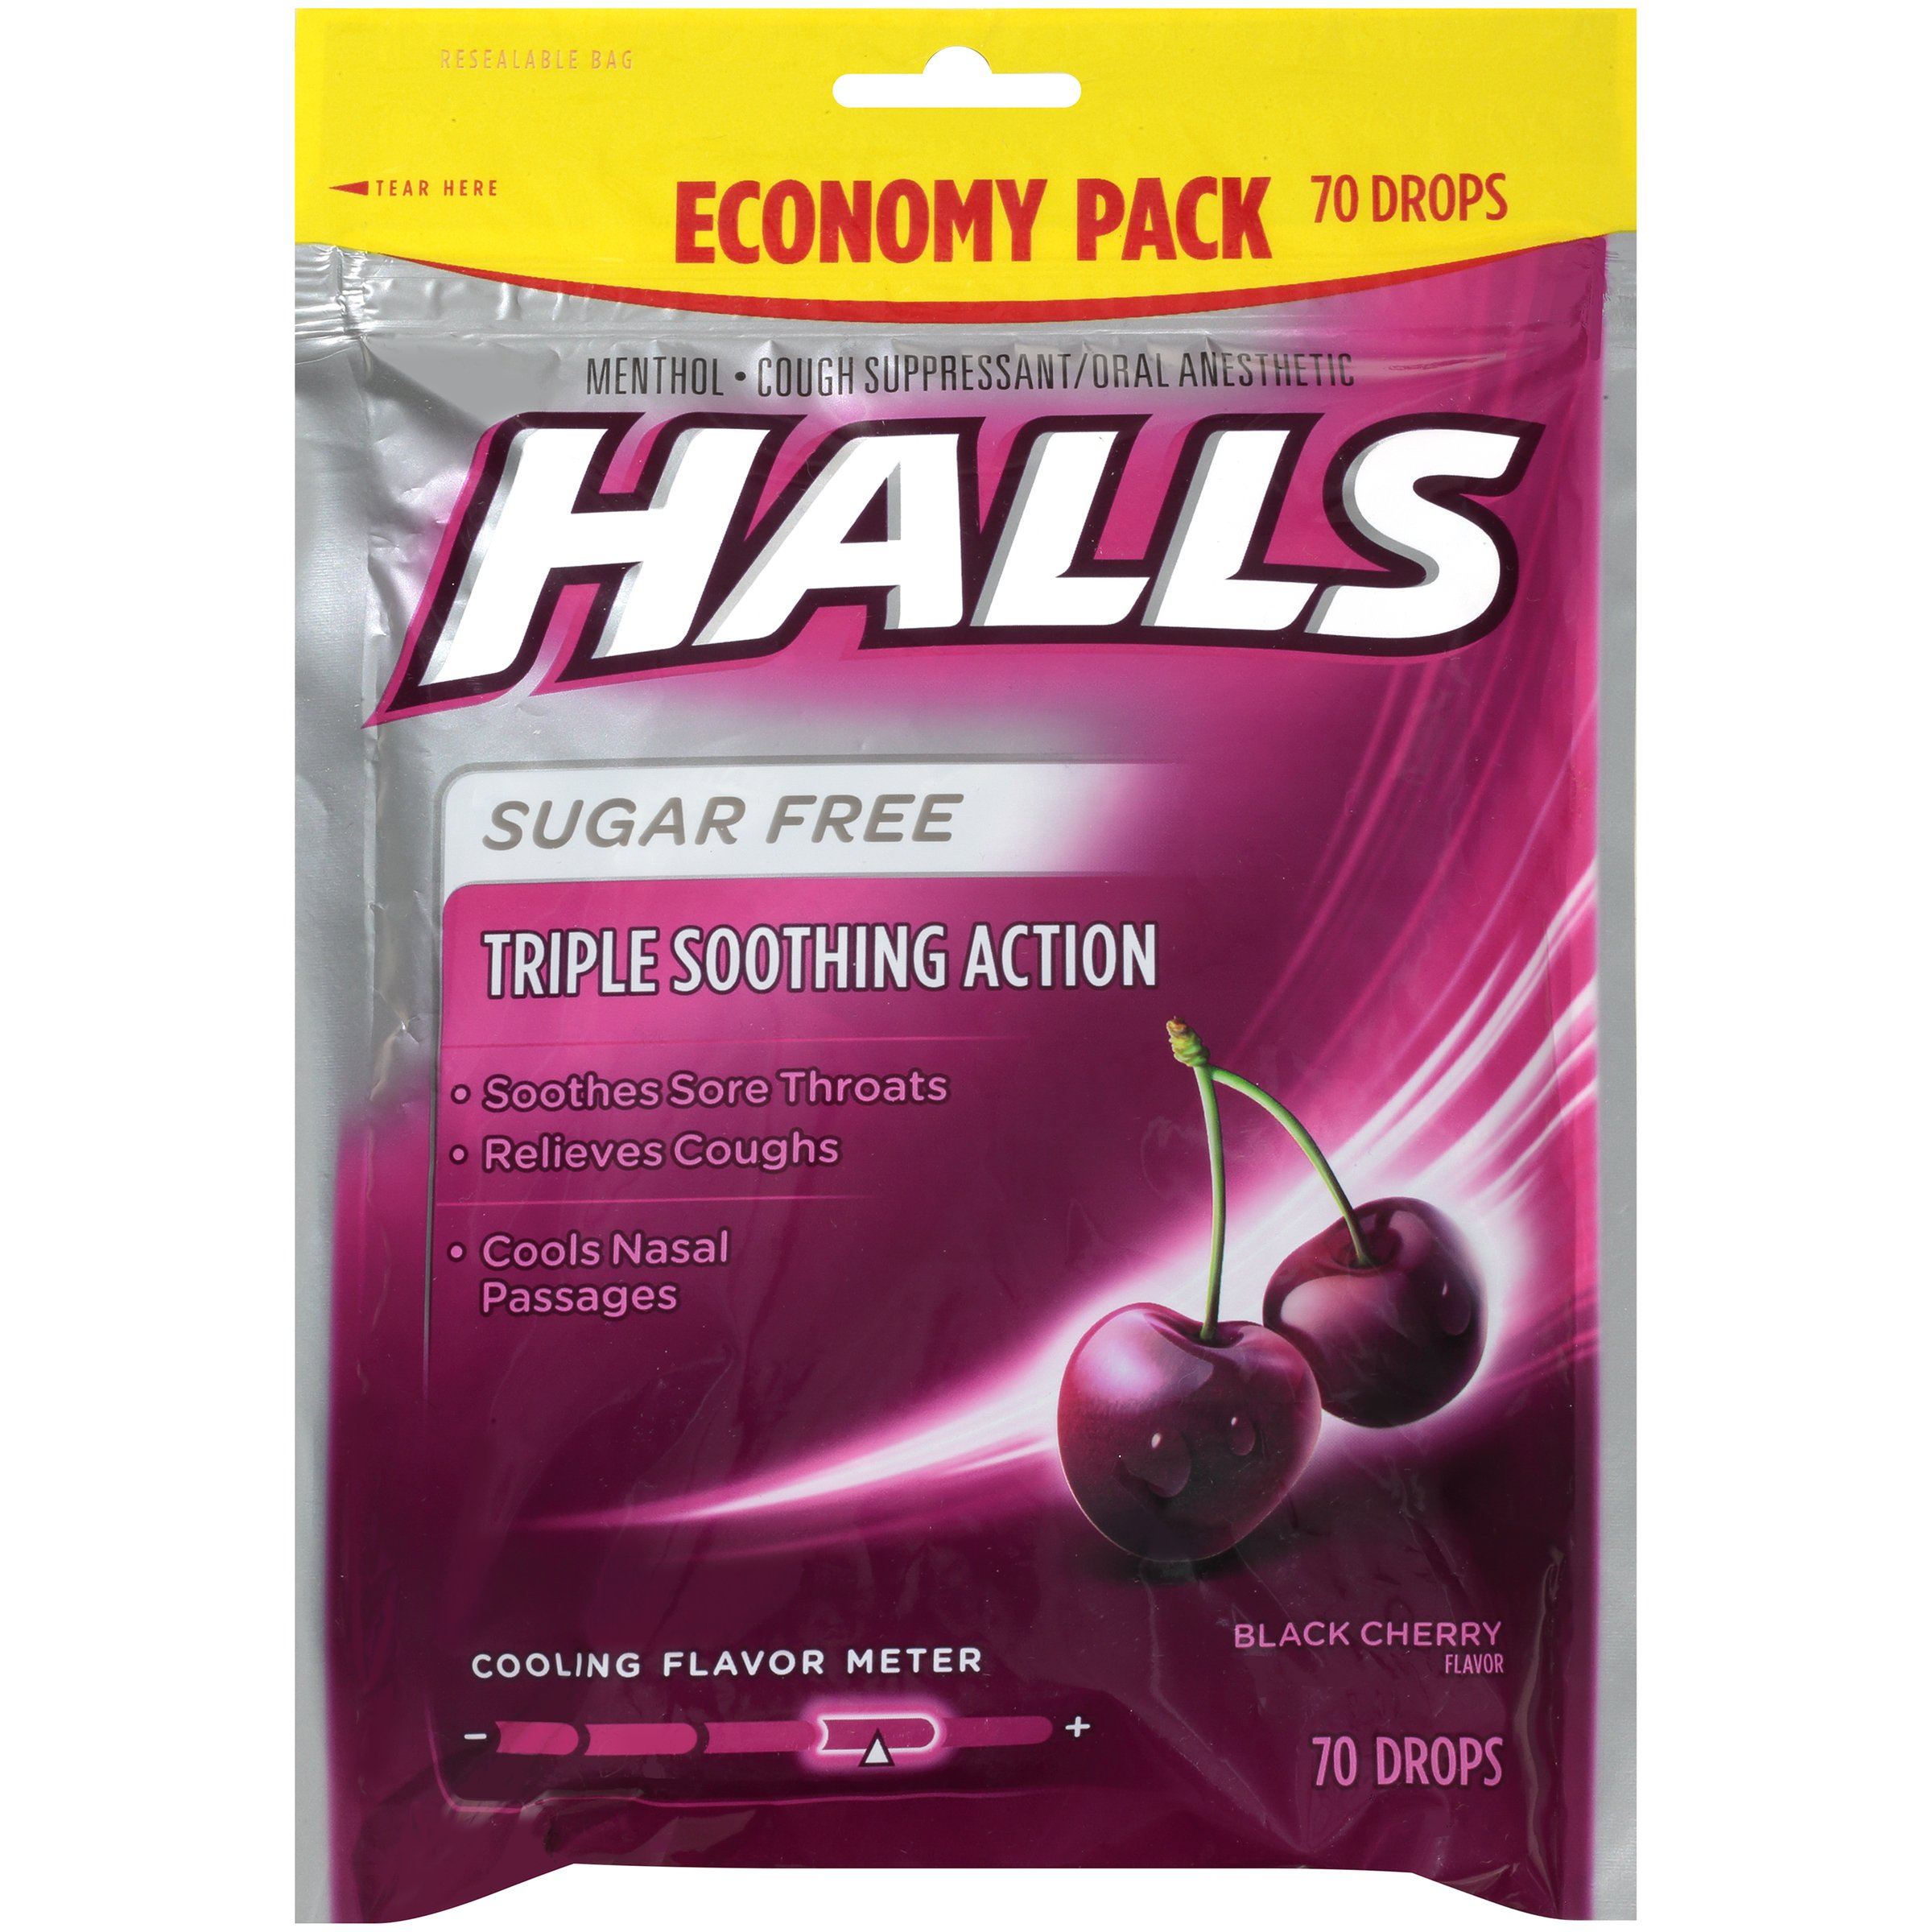 Halls Black Cherry Sugar Free Cough Drops - with Menthol - 840 Drops (12 bags of 70 drops) by Halls (Image #3)